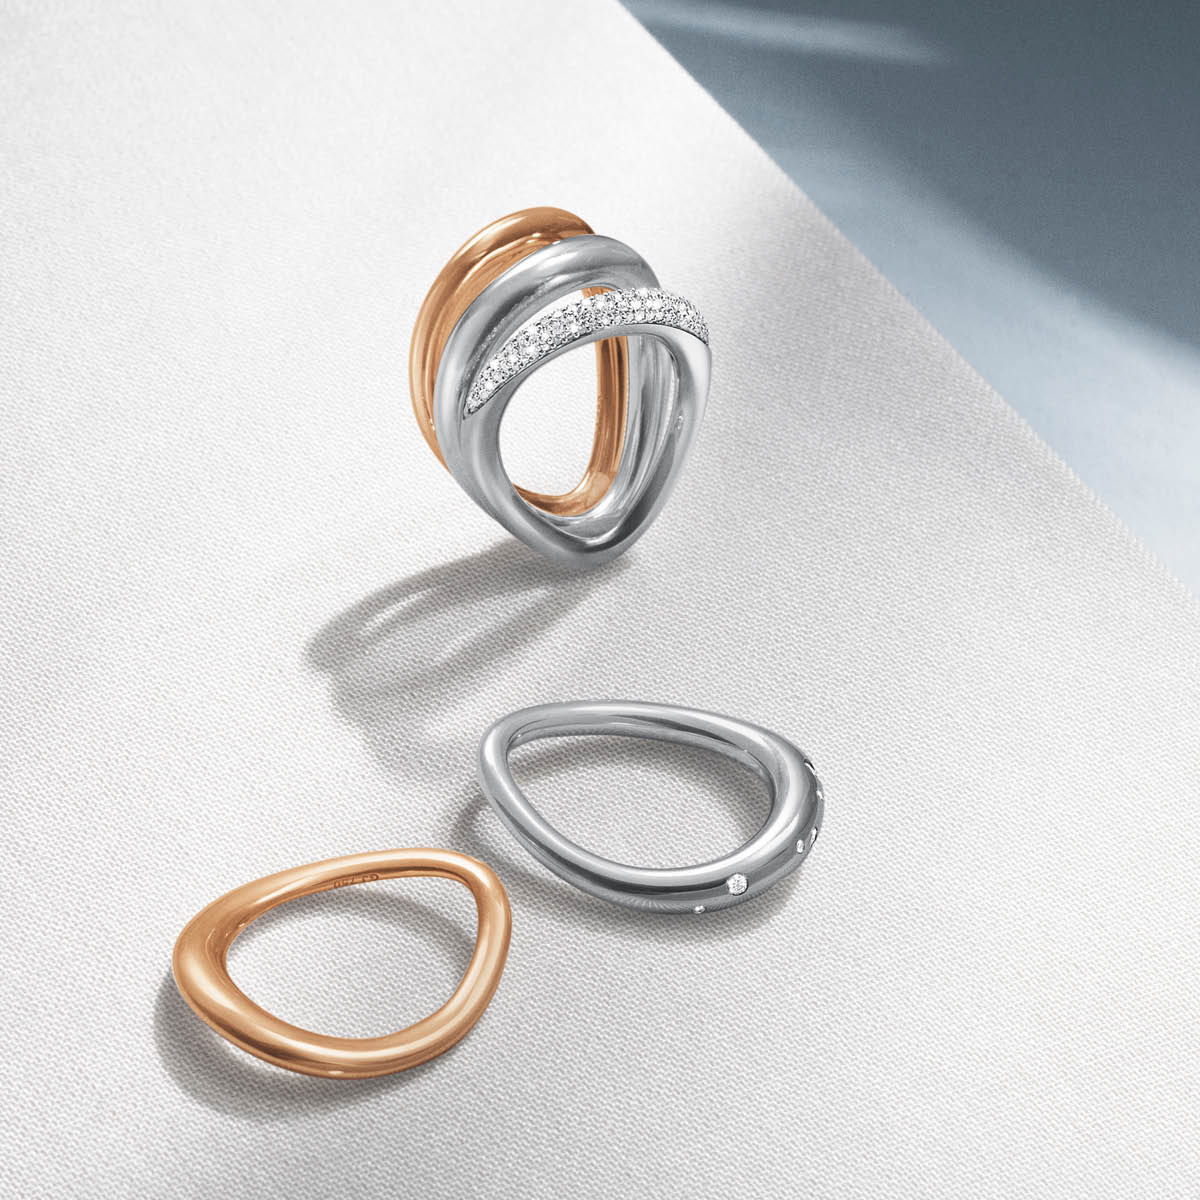 Offspring rings in rose gold and sterling silver with pavé set diamonds